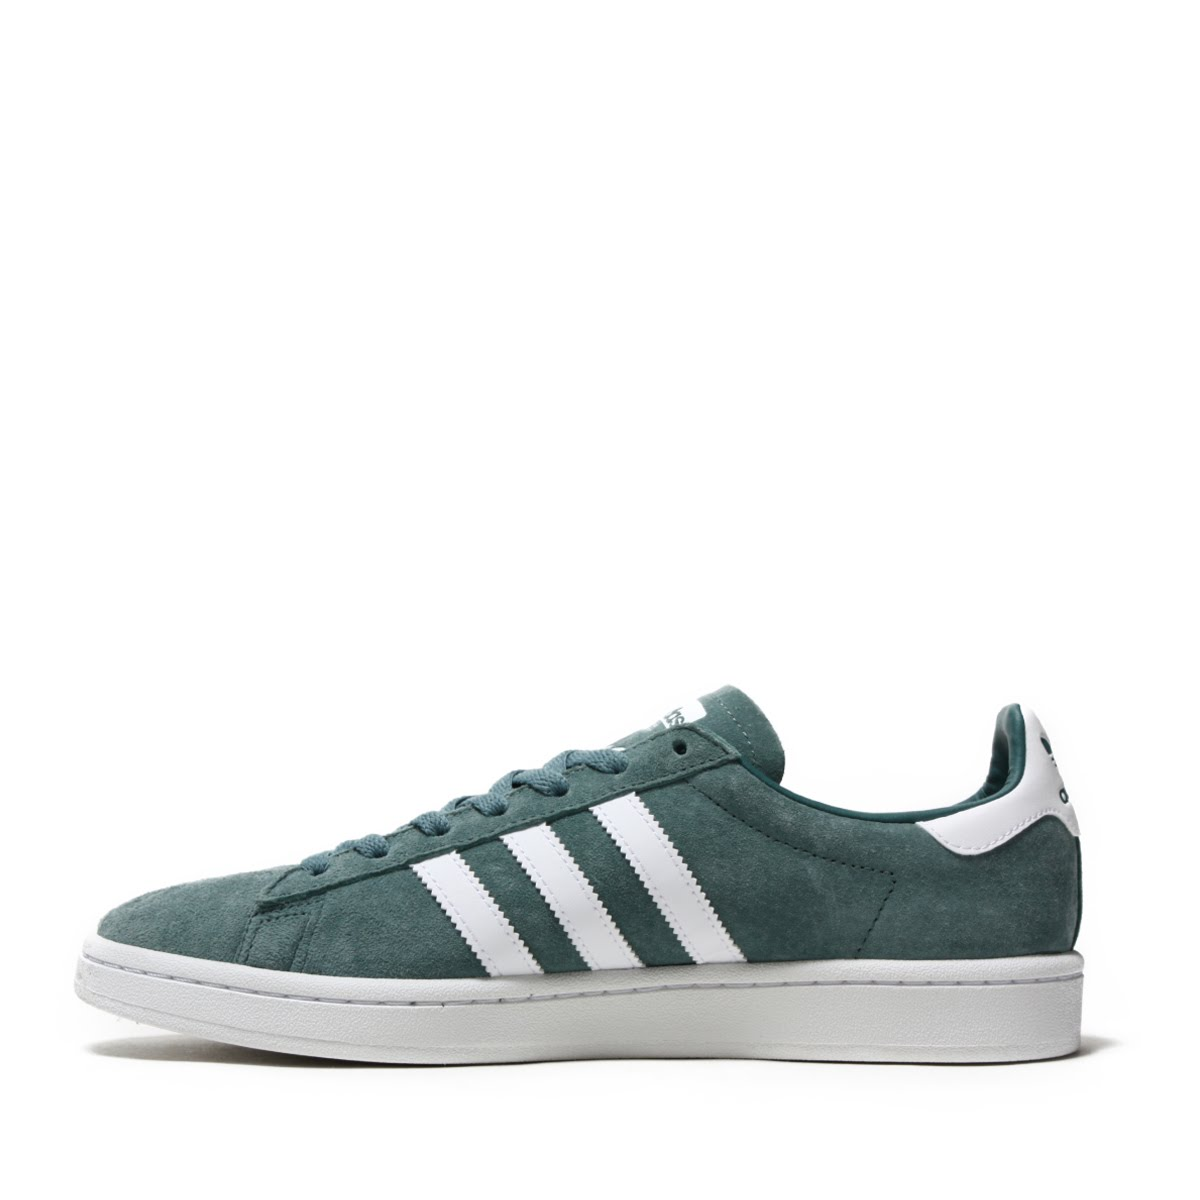 Atmos Pink Adidas Originals Campus Adidas Campus Raw Green